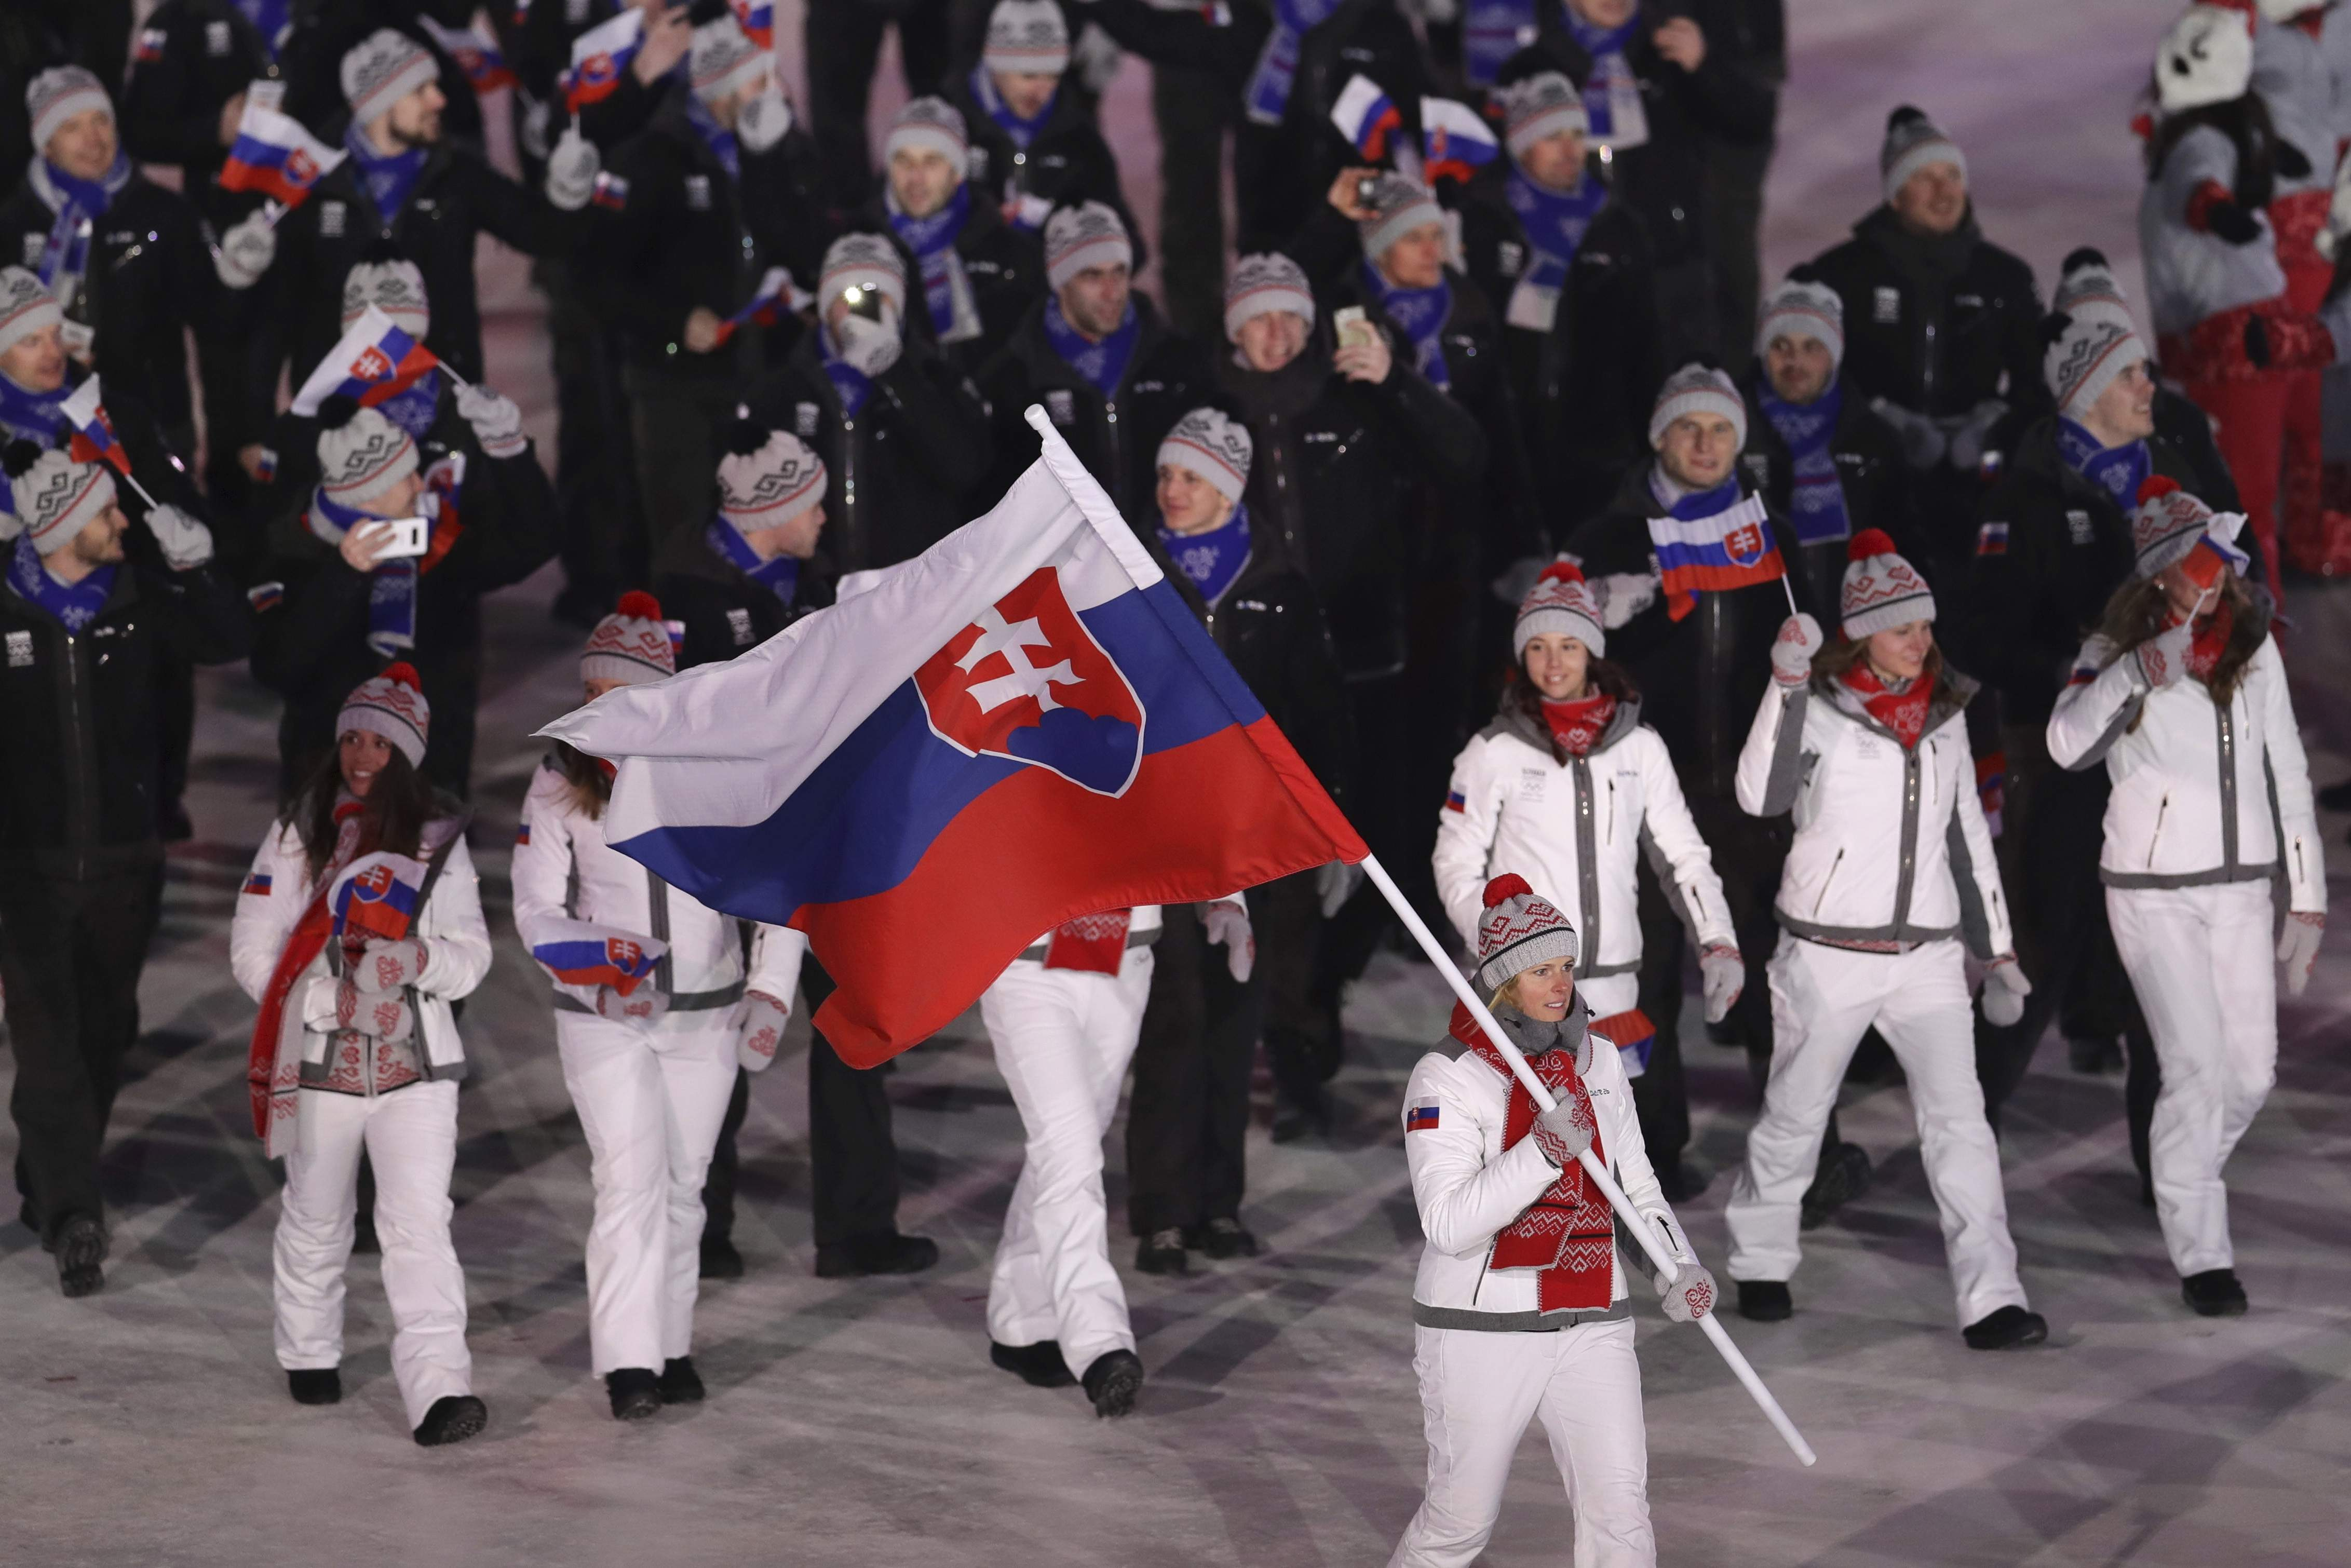 Veronika Velez Zuzulova carries the flag of Slovakia during the opening ceremony of the 2018 Winter Olympics in Pyeongchang, South Korea, Friday, Feb. 9, 2018. (AP Photo/Michael Sohn)